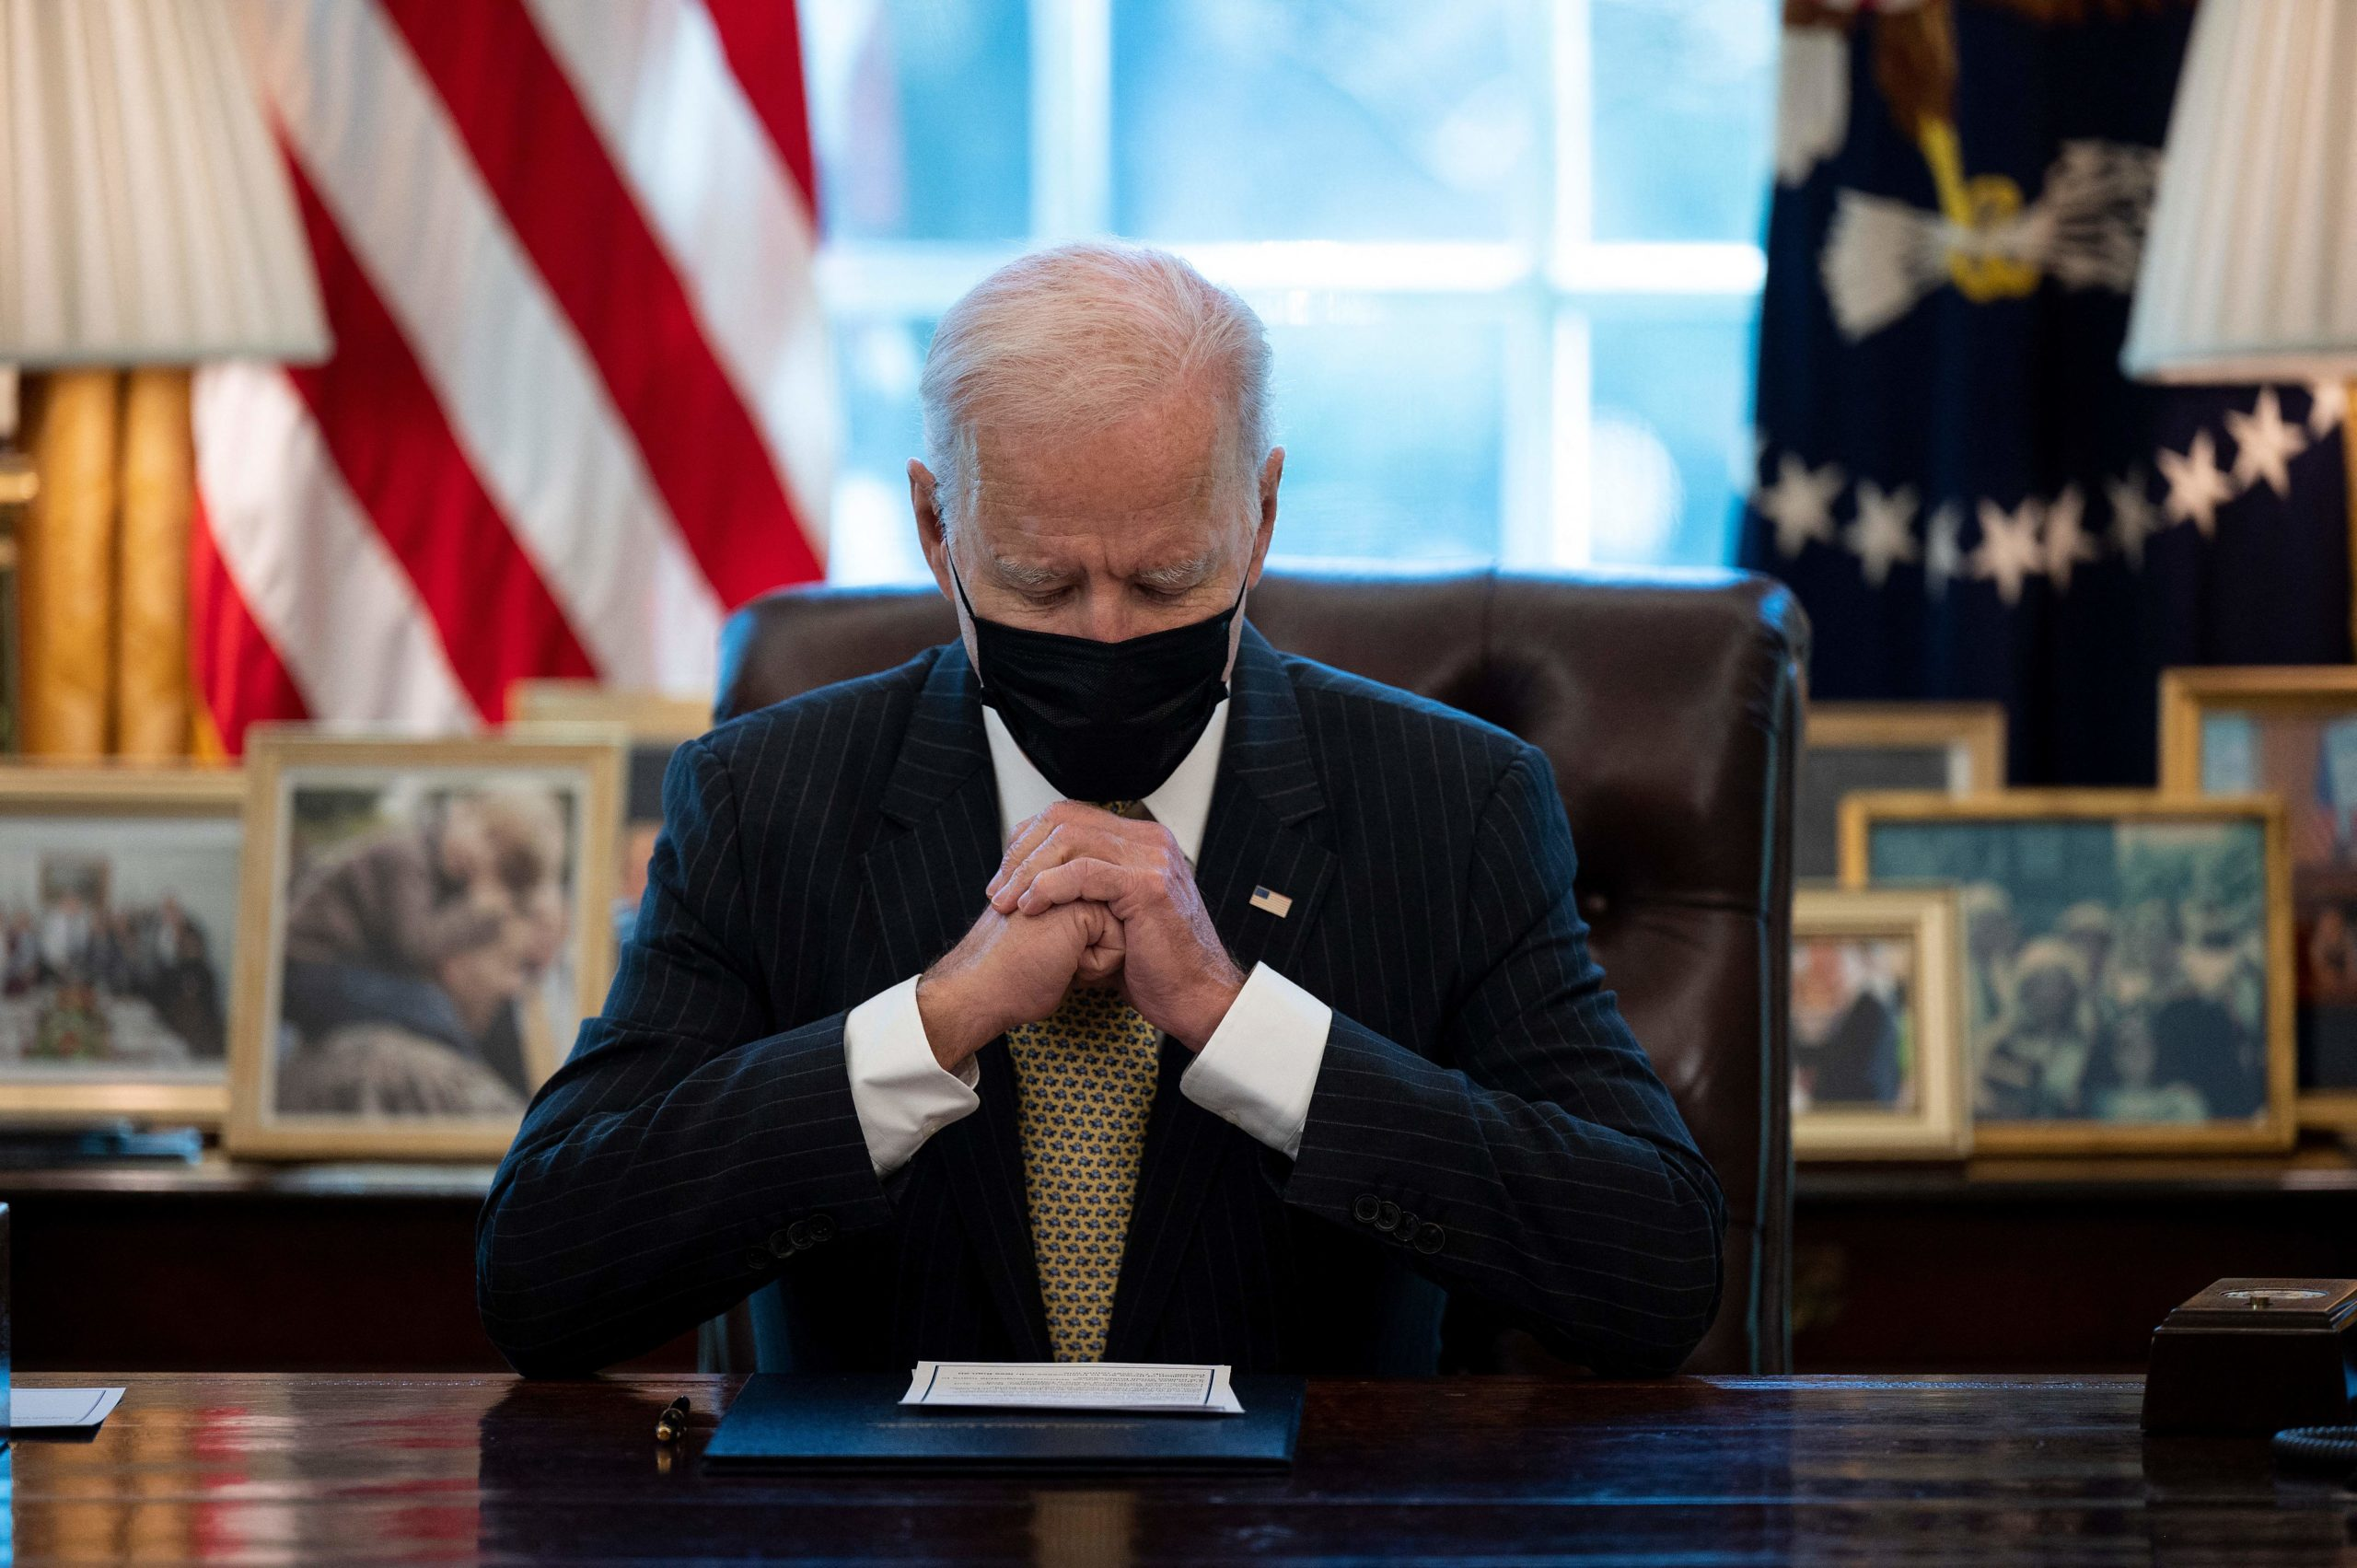 US President Joe Biden prepares to sign the Paycheck Protection Program (PPP) Extension Act of 2021 into law at the White House in Washington, DC, on March 30, 2021. (Photo by JIM WATSON/AFP via Getty Images)